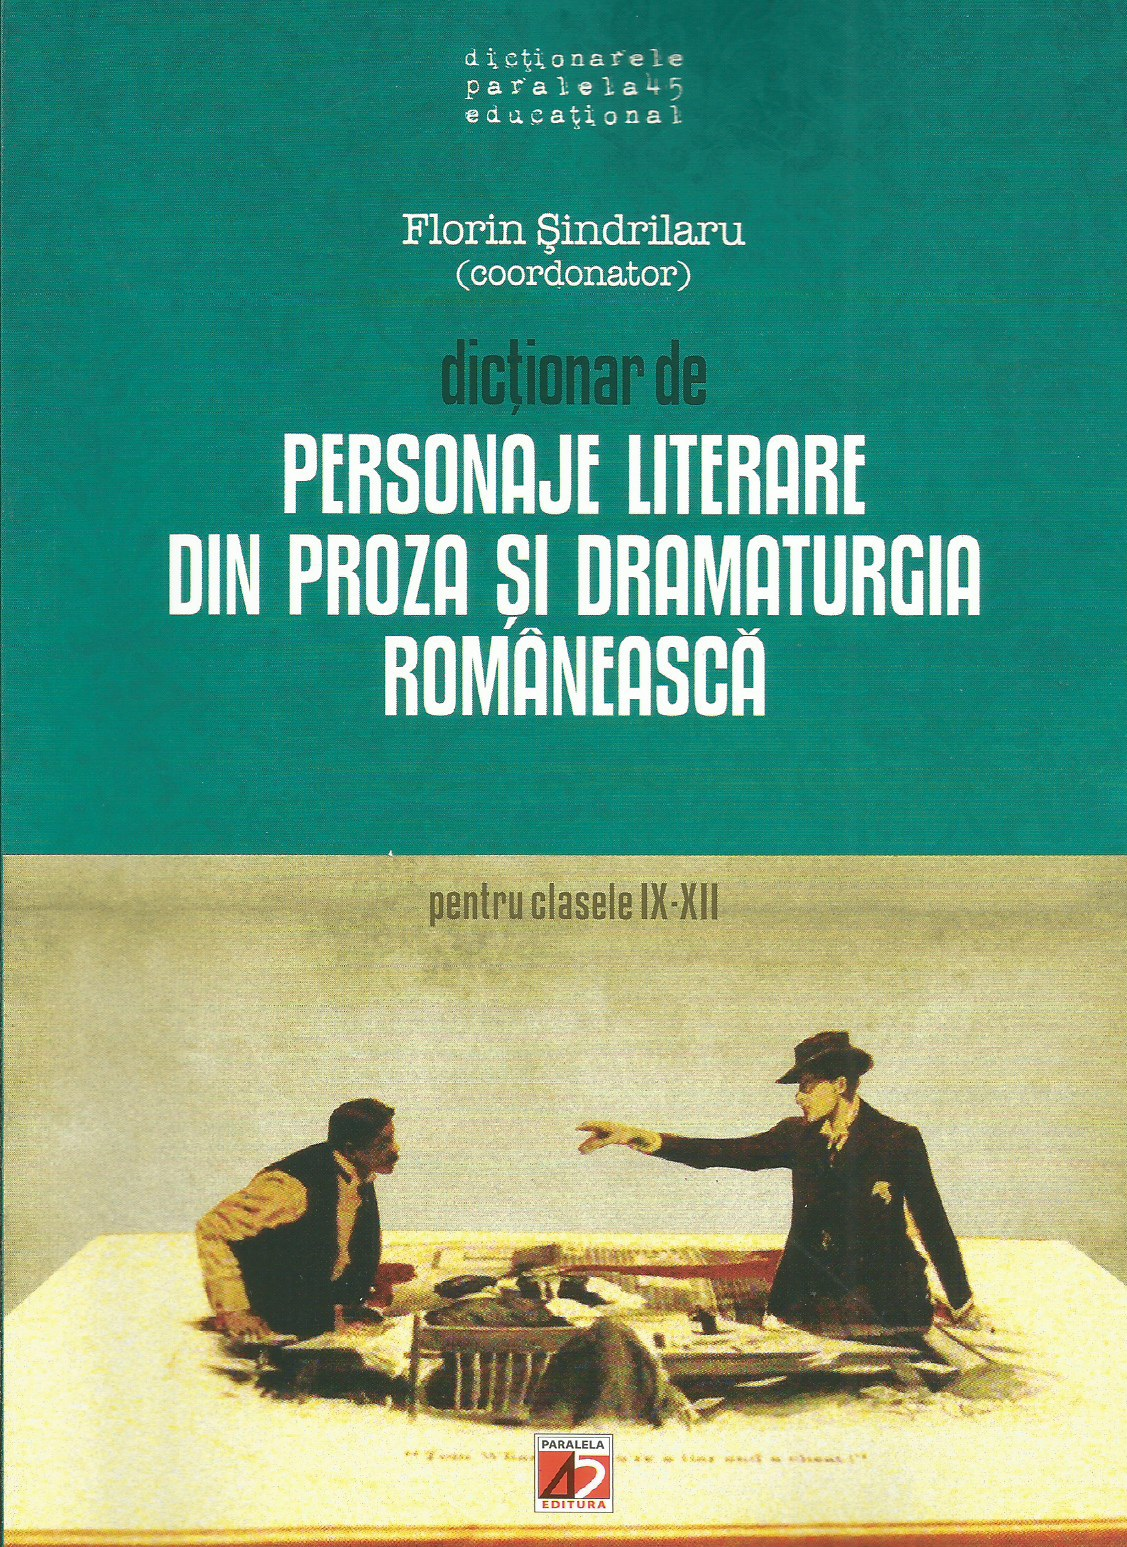 Dictionar personaje literare din proza